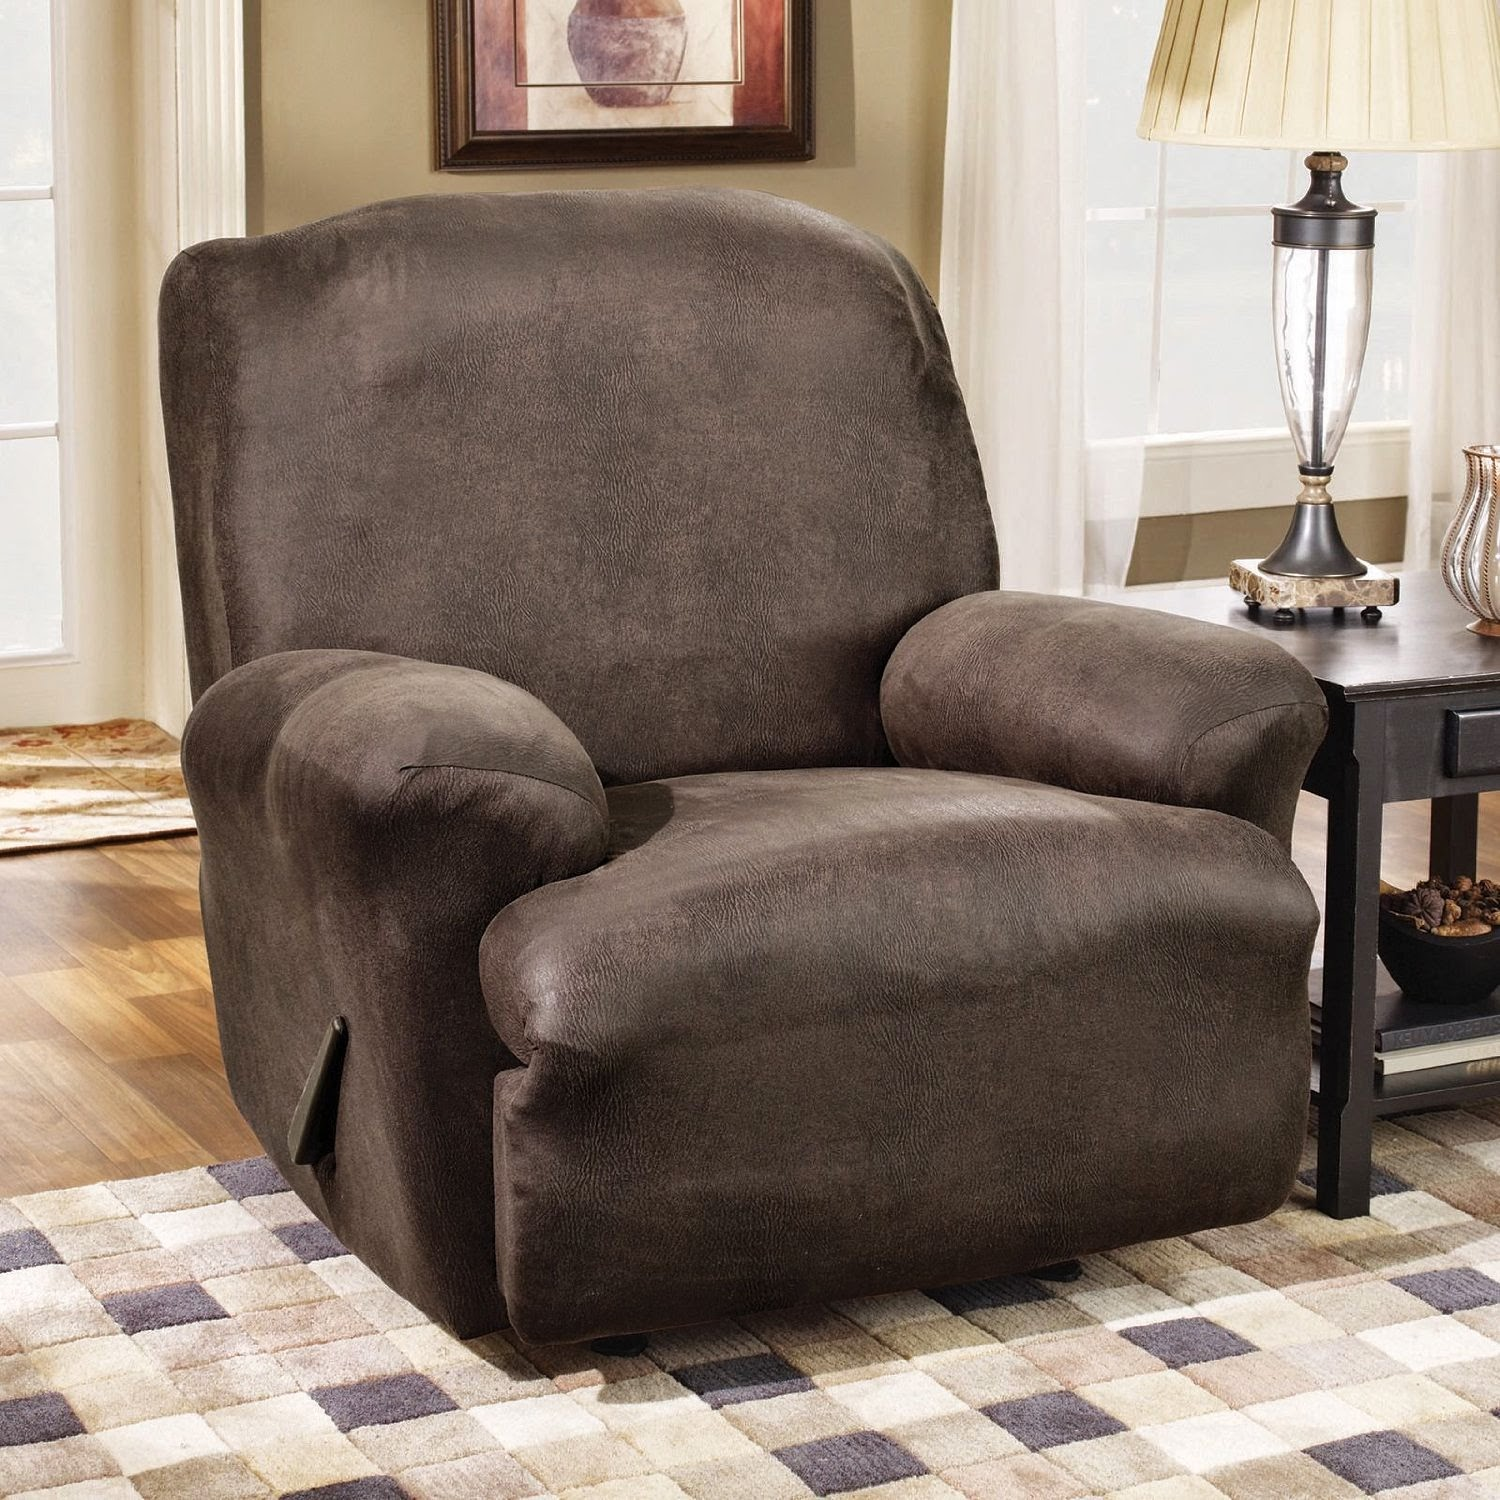 Double Recliner Sofa Cover Wall Bed Vancouver Cheap Sofas For Sale Sure Fit Dual Reclining